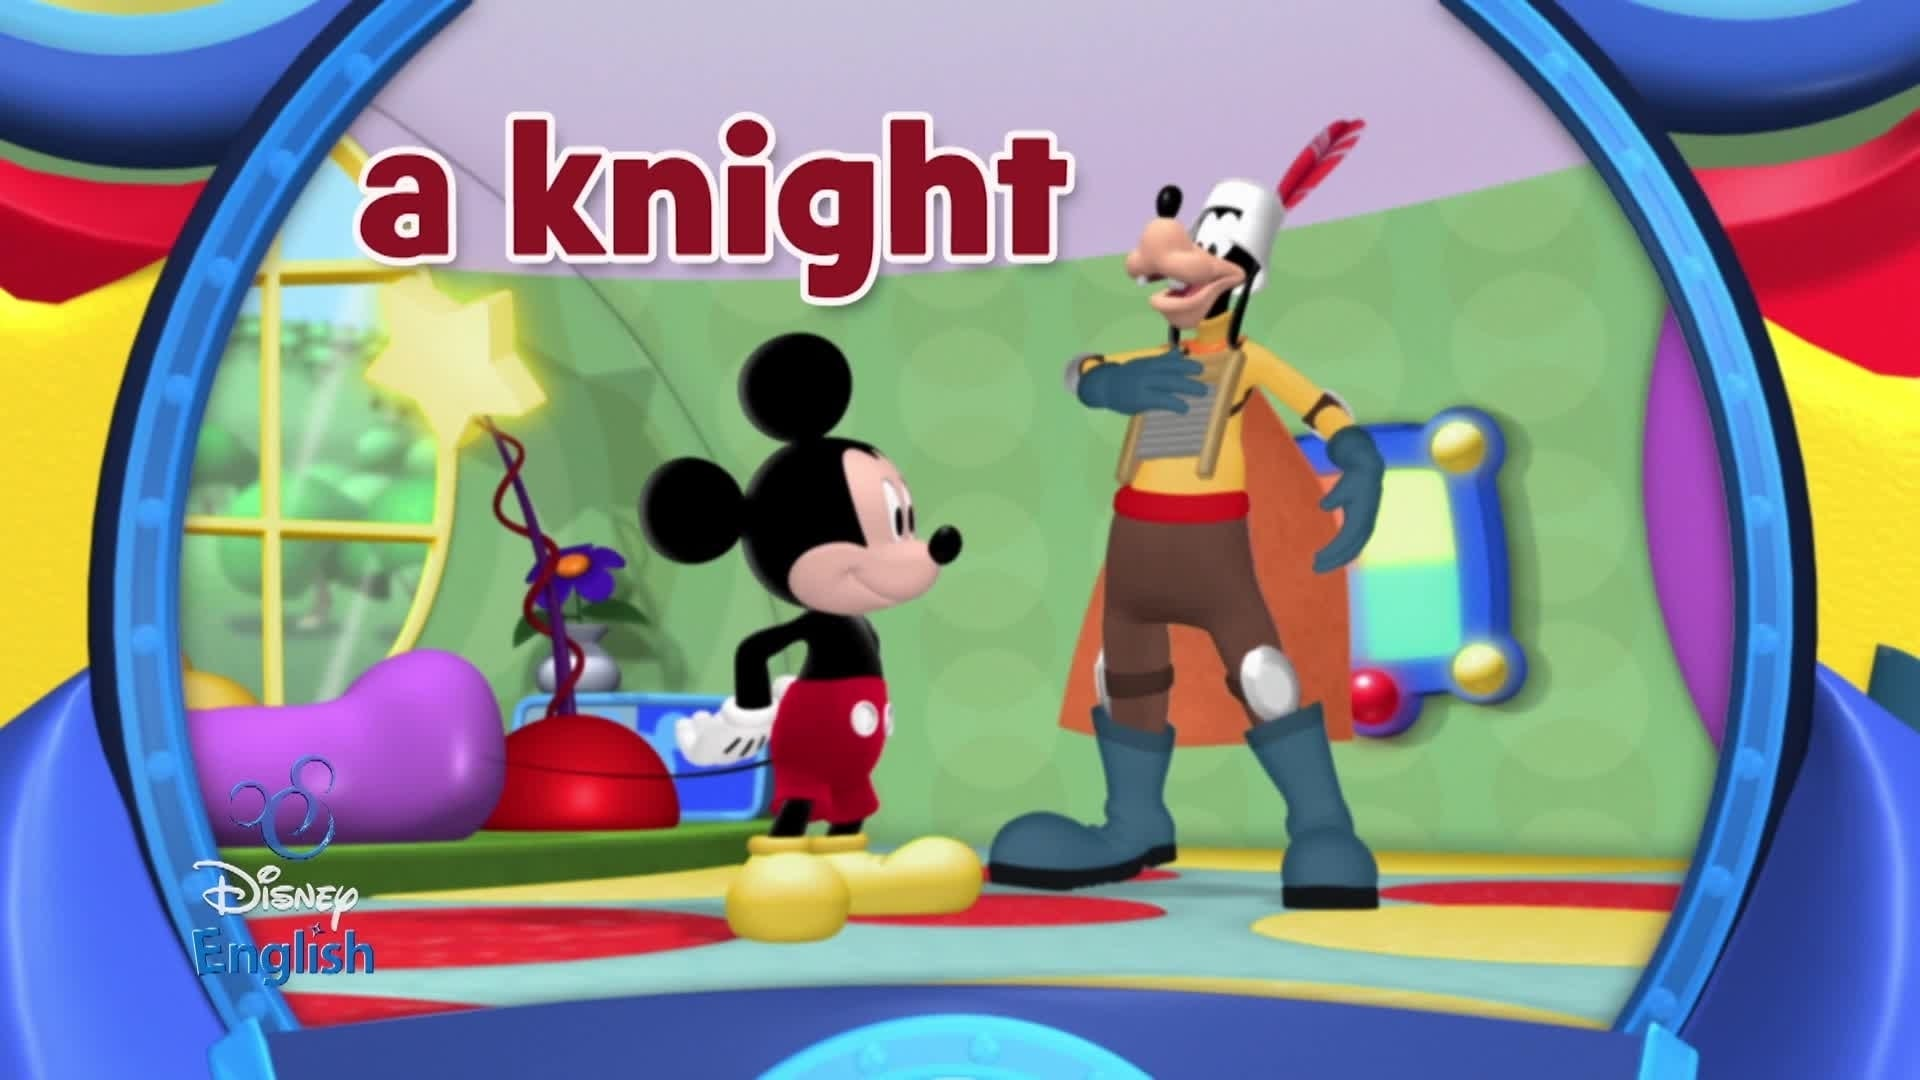 Disney English - Knights